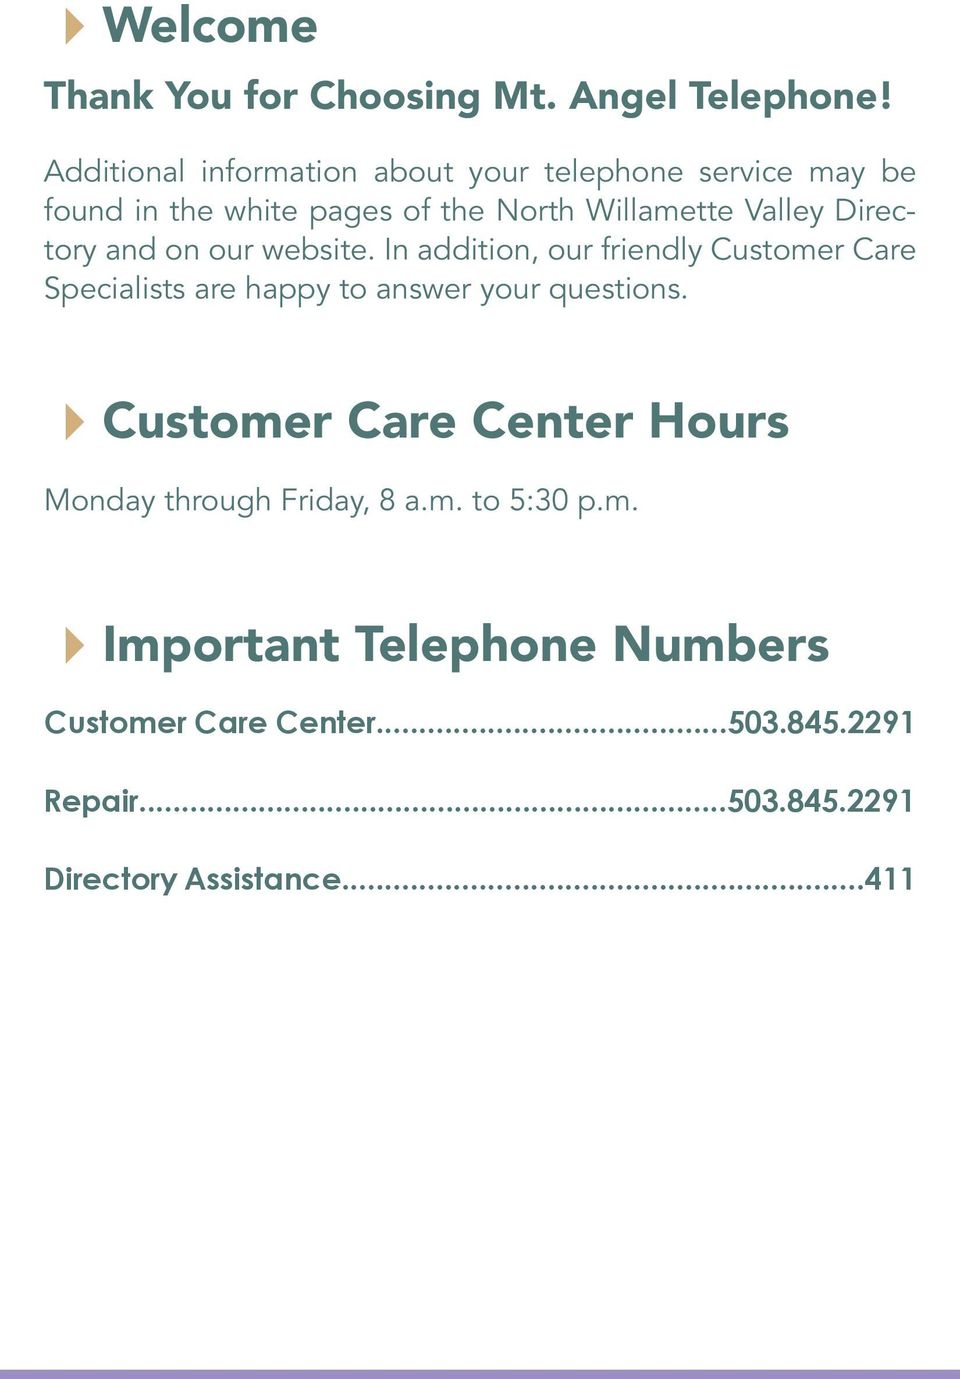 Directory and on our website. In addition, our friendly Customer Care Specialists are happy to answer your questions.